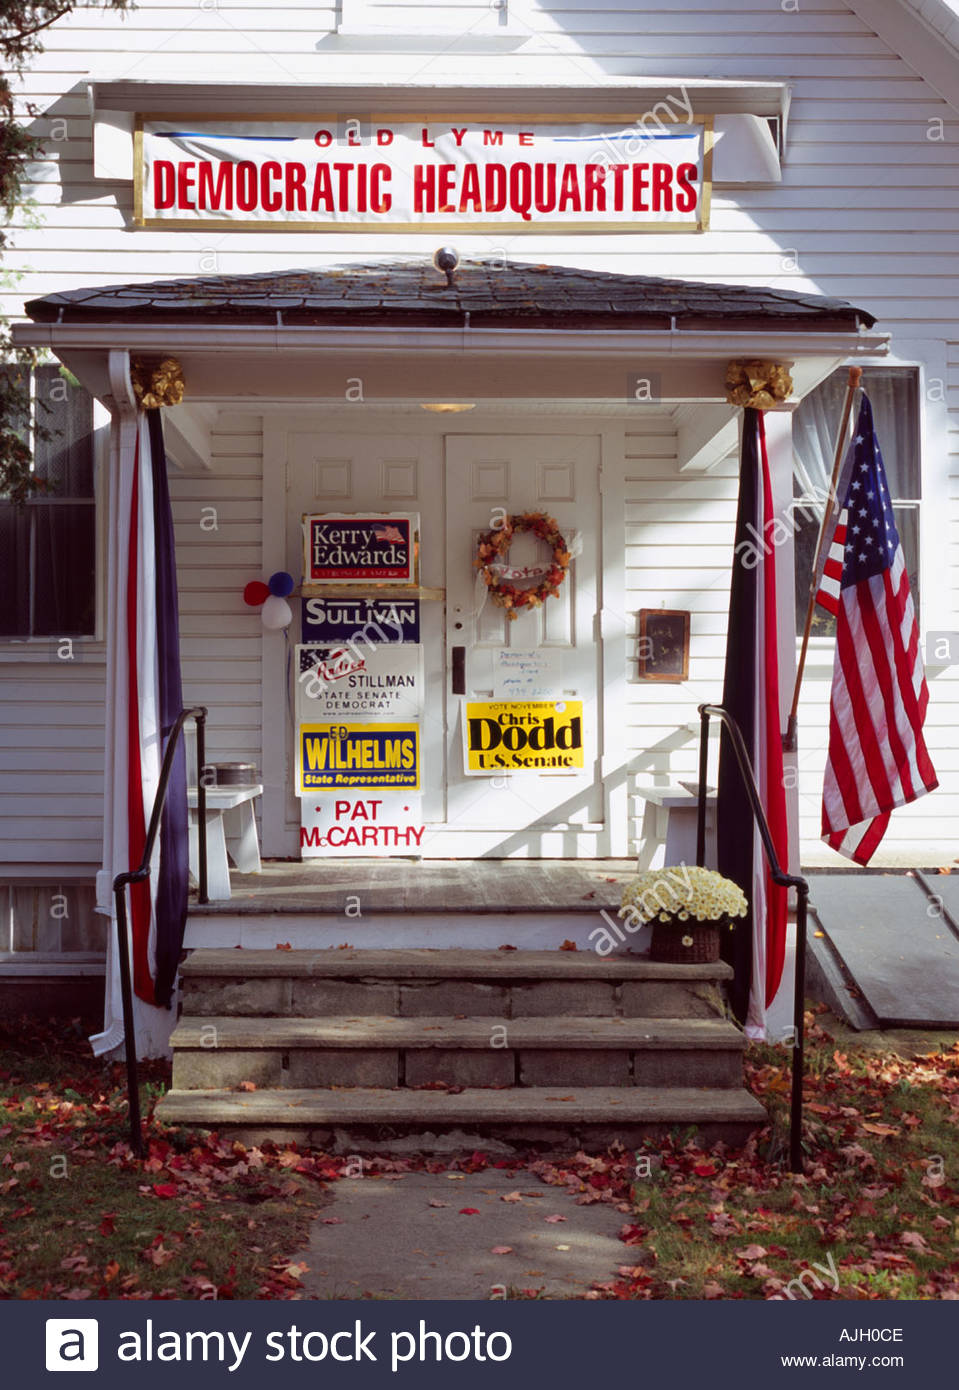 Democratic headquarters during US president election campaign Old Lyme Connecticut USA Oct 2004 - Stock Image